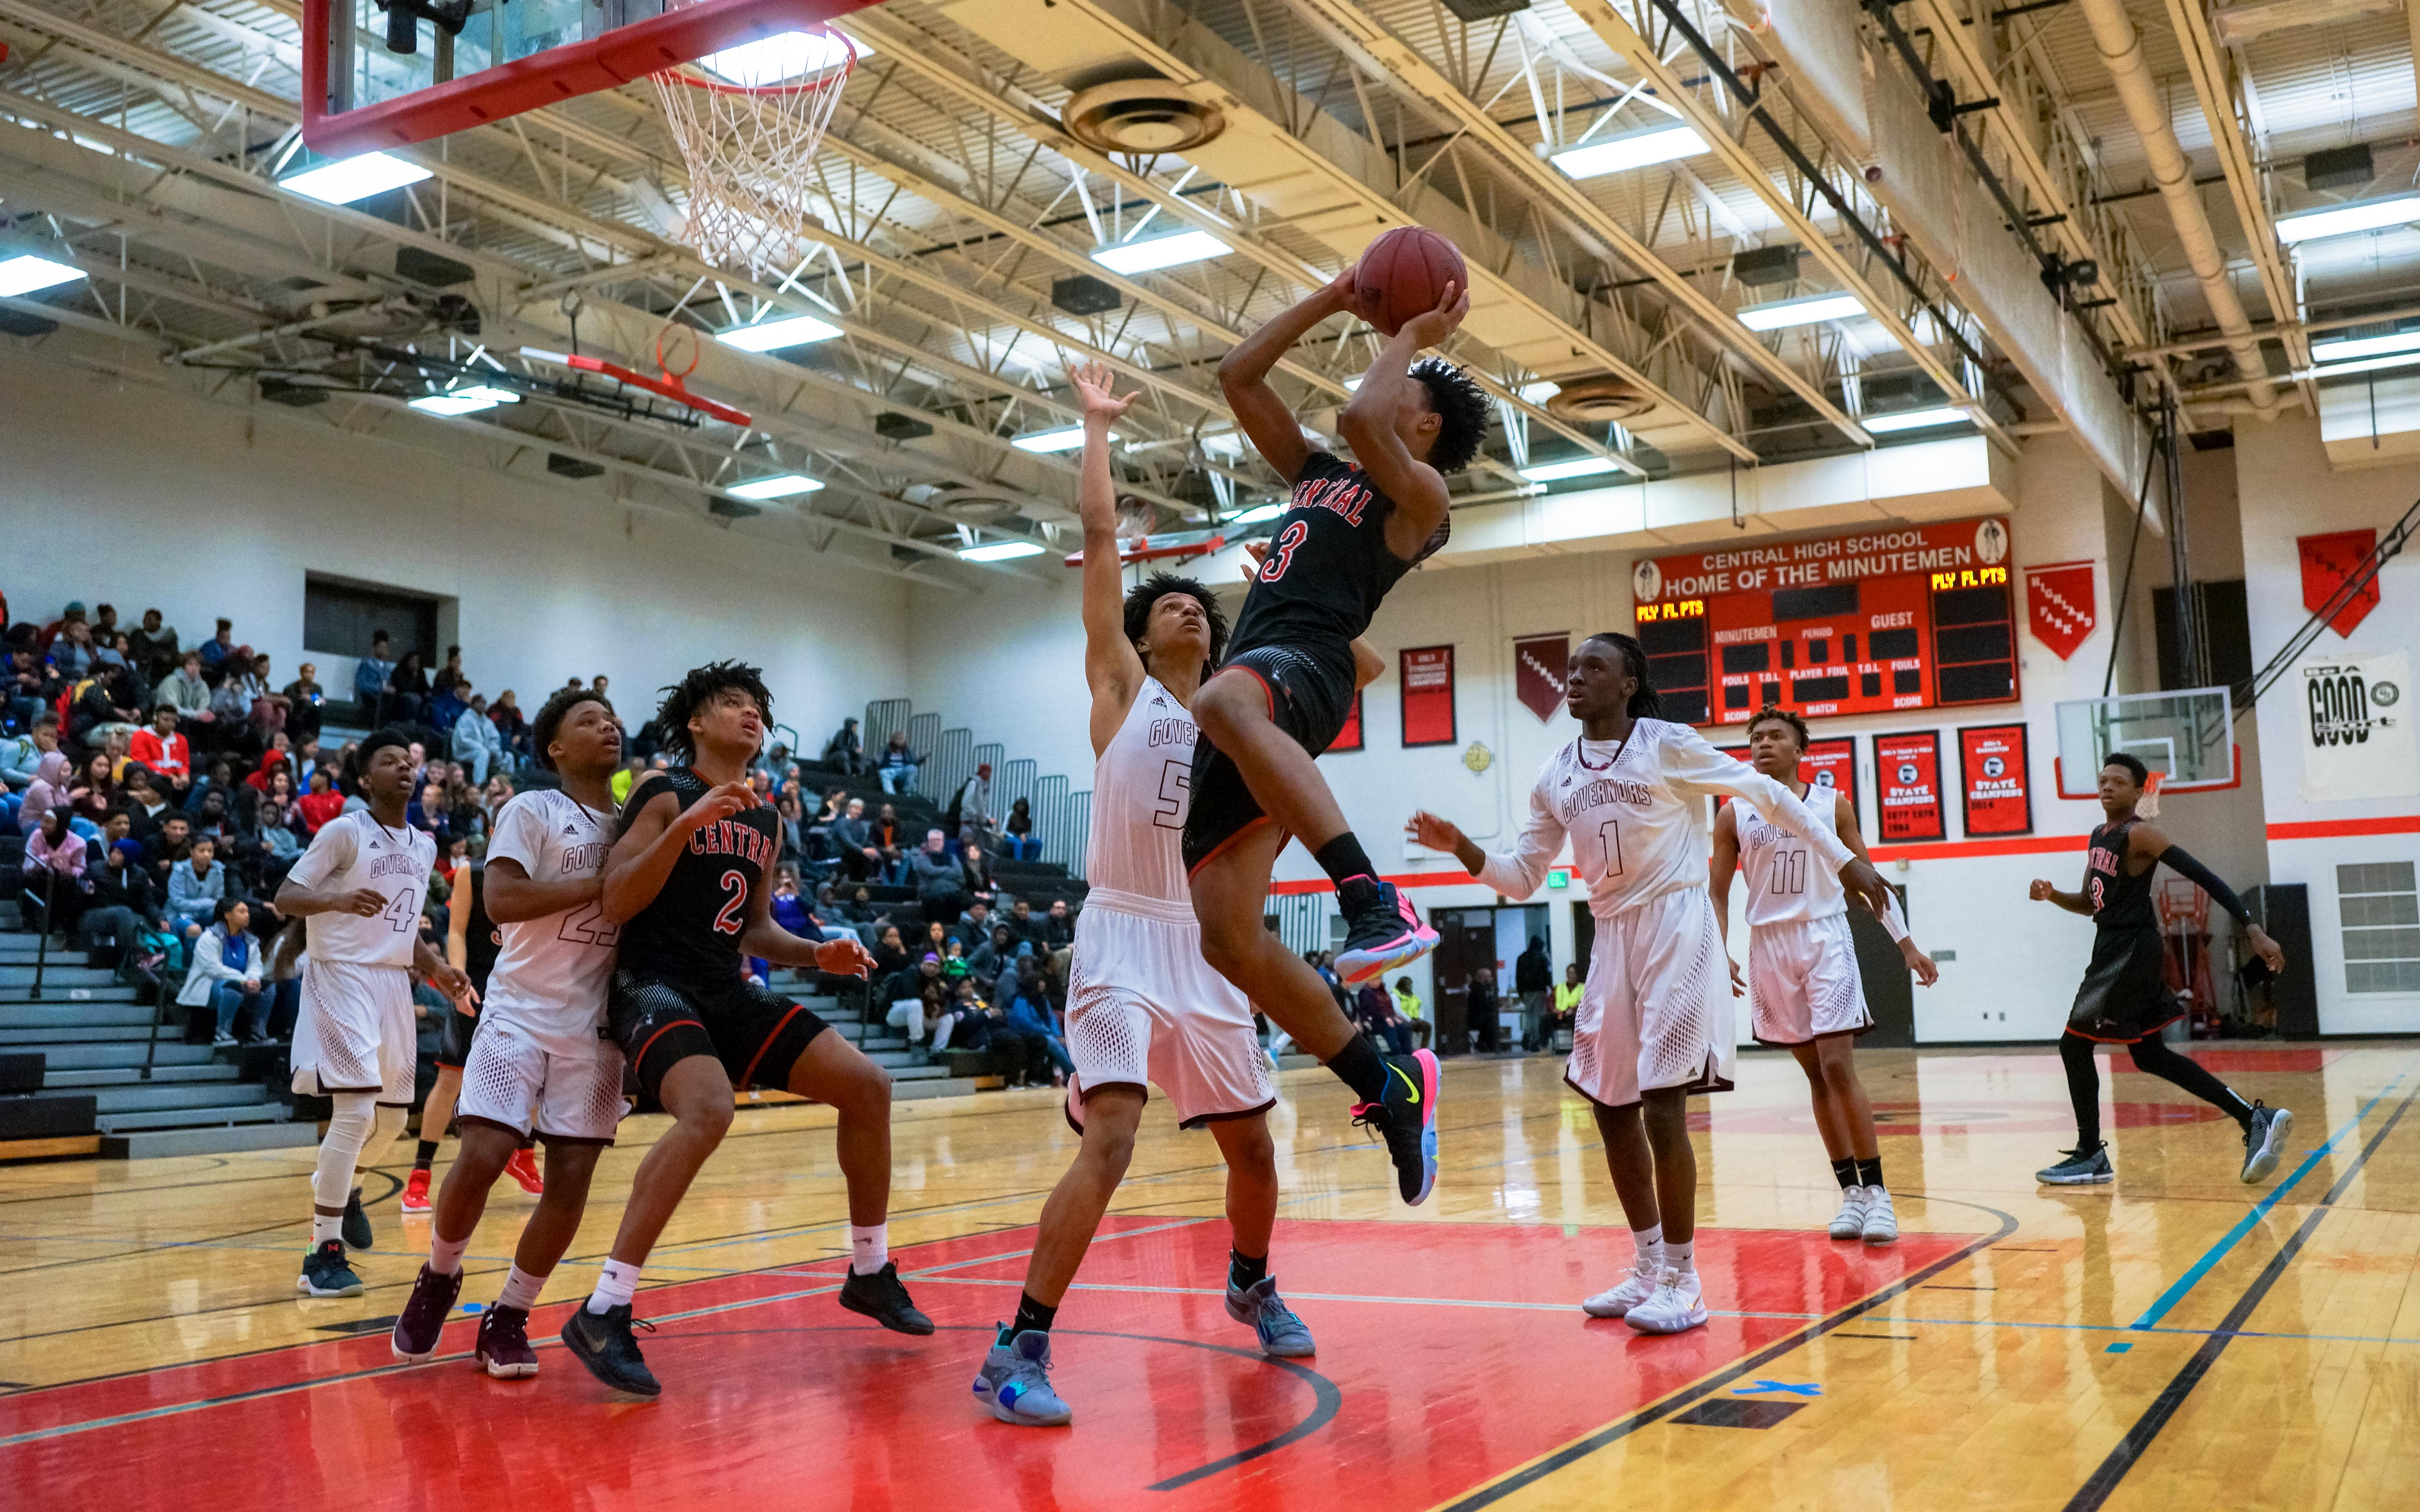 St. Paul Central's Dion Ford with two of his 18 points Tuesday night in a 67-39 victory over visiting St. Paul Johnson. Ford registered his 1,000th career point in the victory. Photo by Korey McDermott, SportsEngine